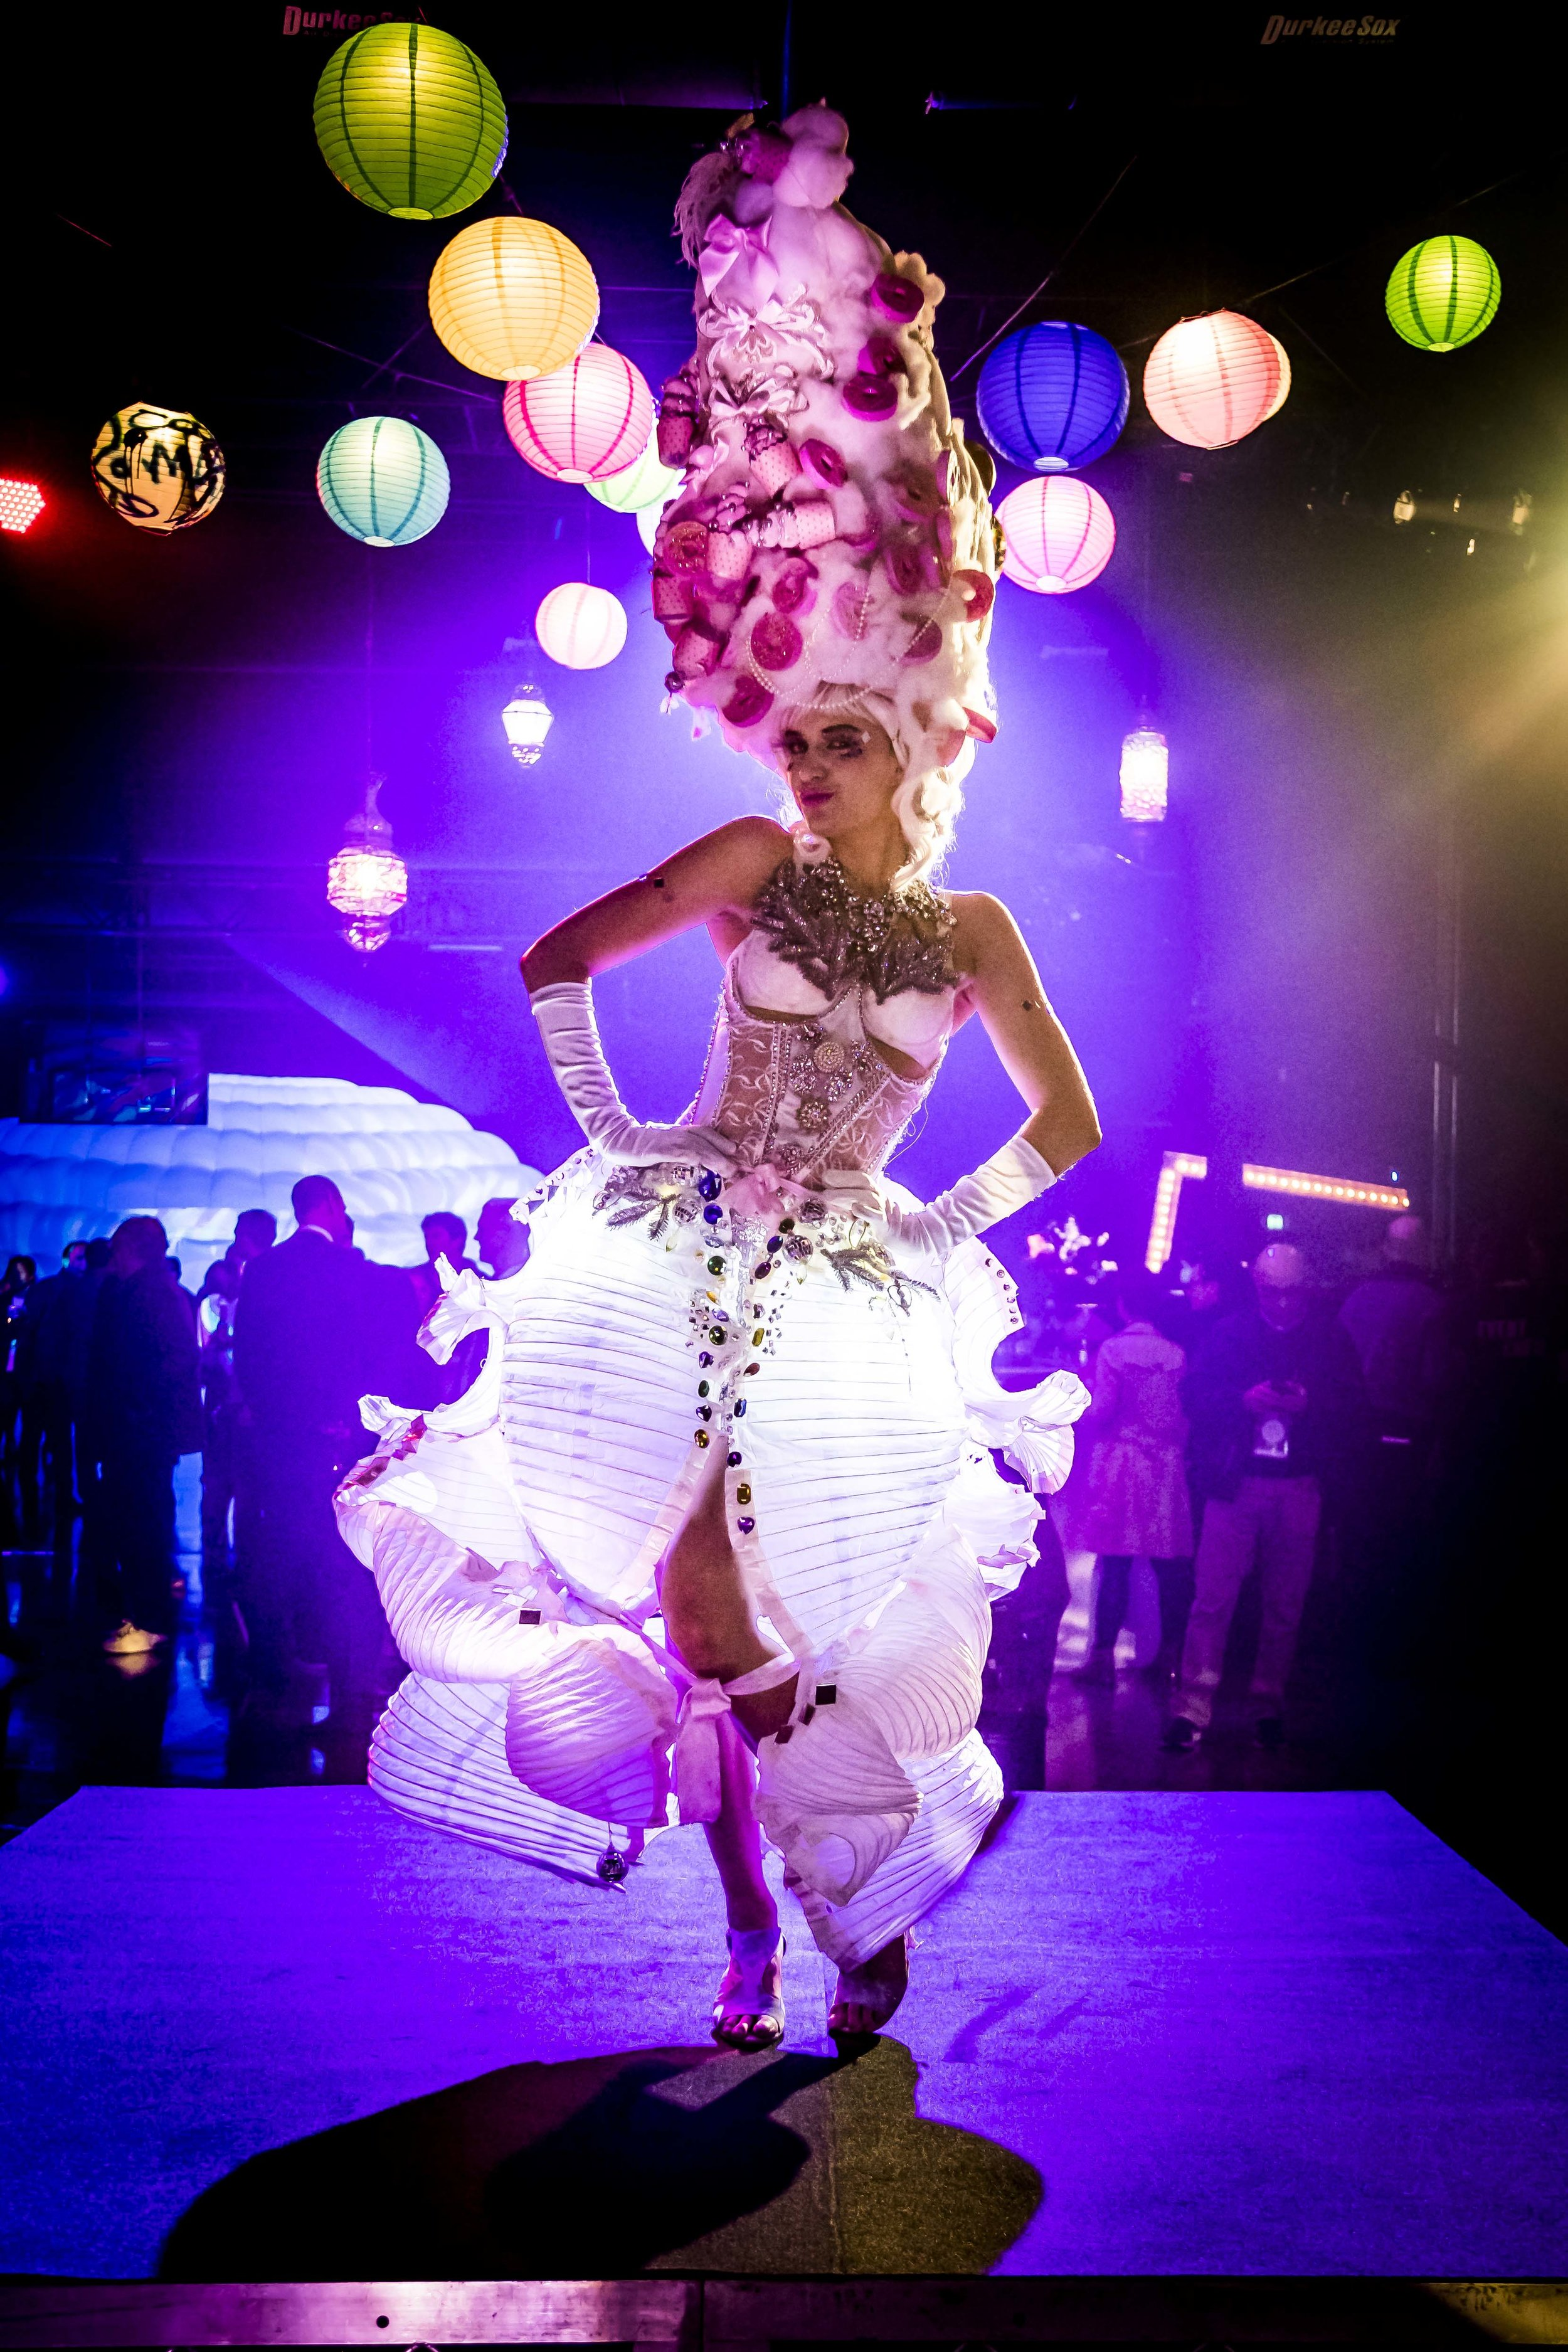 "Marie Lantern-ette - Marie Lanternette is a glowing spectacle, with her skirt made of paper lanterns lit up with camping lights! Sometimes Ms Lanternette has a collection of lanterns on long poles that she uses to light people's way and lead them from place to place. 8 foot tall and teetering in platform heels, the enormous bouffant ""wig"" strewn with cake, donuts and what appears to be fairy-floss, is the cherry on top of this spectacular luminescent look."